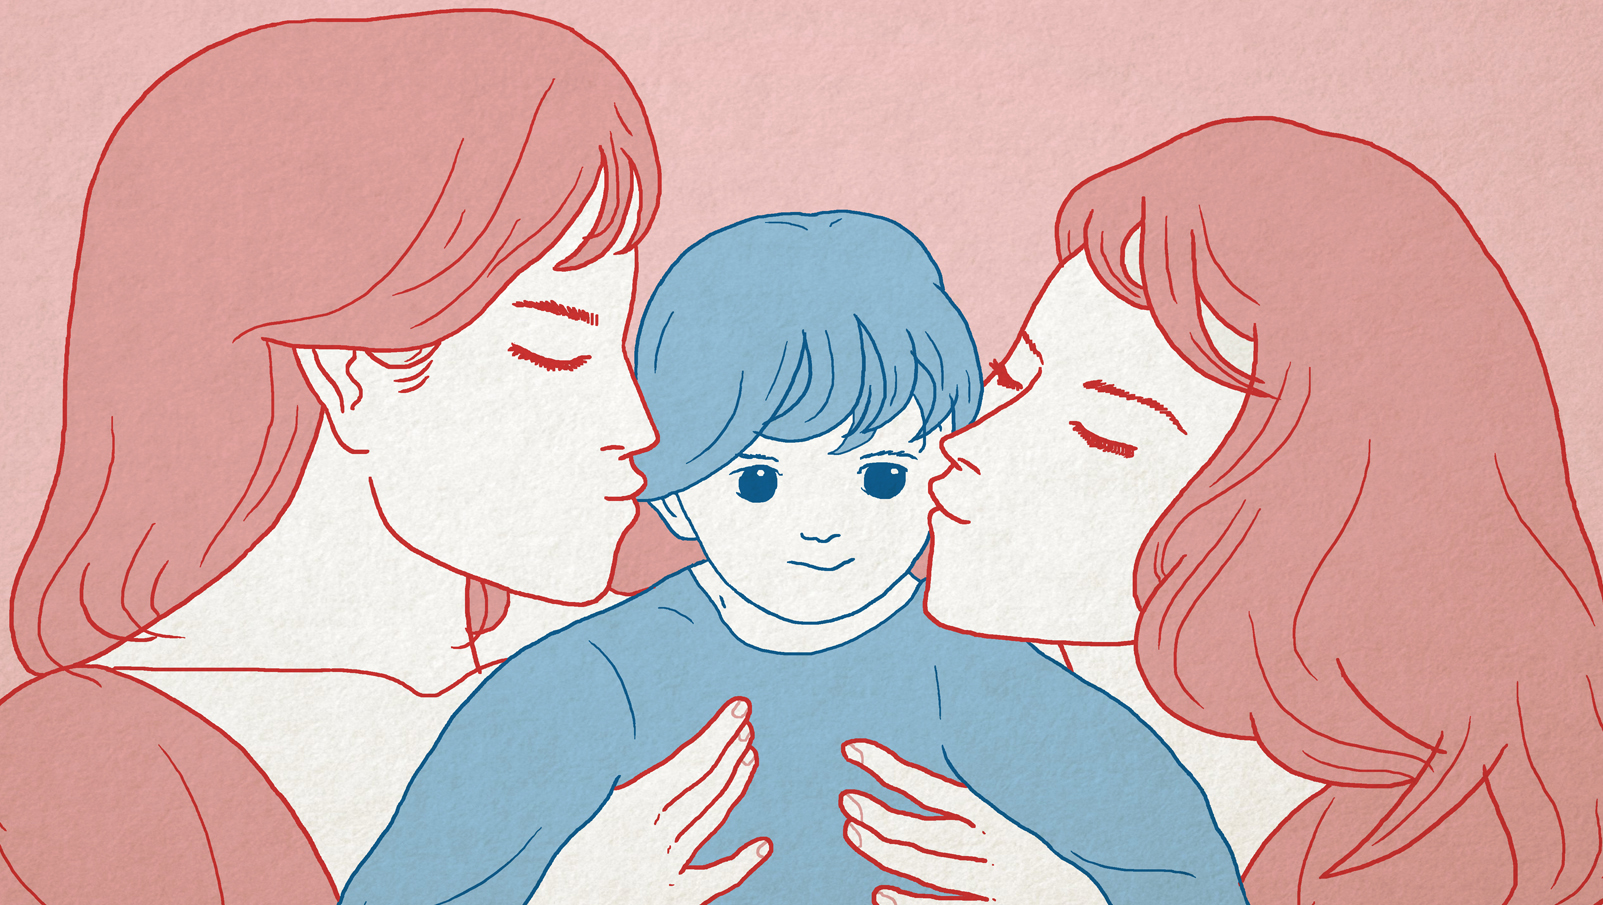 Lesbian family values and fears picture